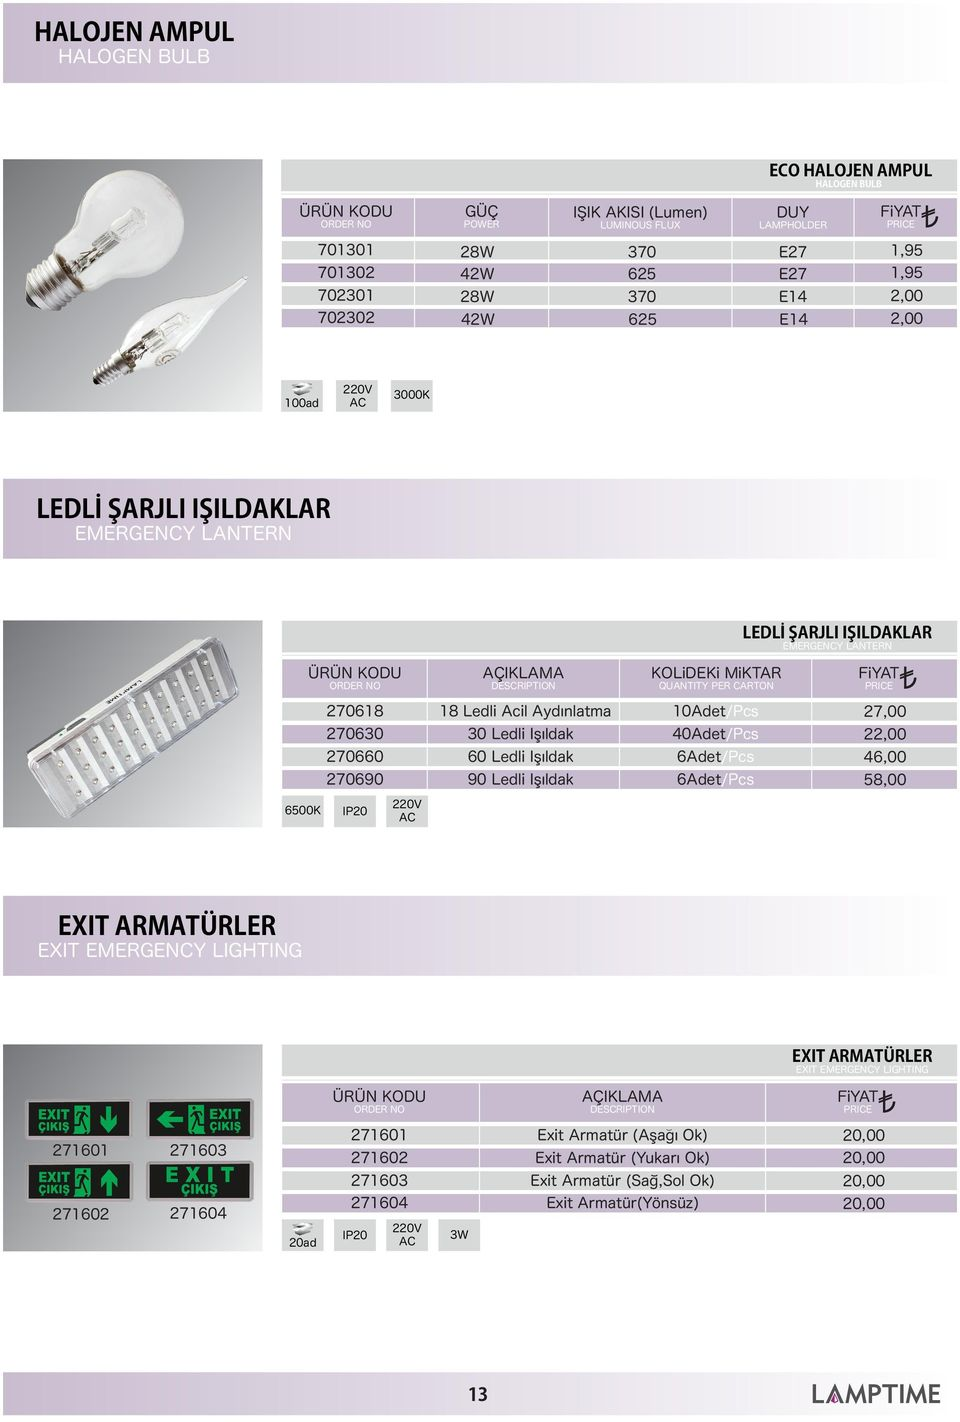 Işıldak 40Adet/Pcs 60 Ledli Işıldak 6Adet/Pcs 90 Ledli Işıldak 6Adet/Pcs 46,00 58,00 EXIT ARMATÜRLER EXIT EMERGENCY LIGHTING EXIT ARMATÜRLER EXIT EMERGENCY LIGHTING AÇIKLAMA